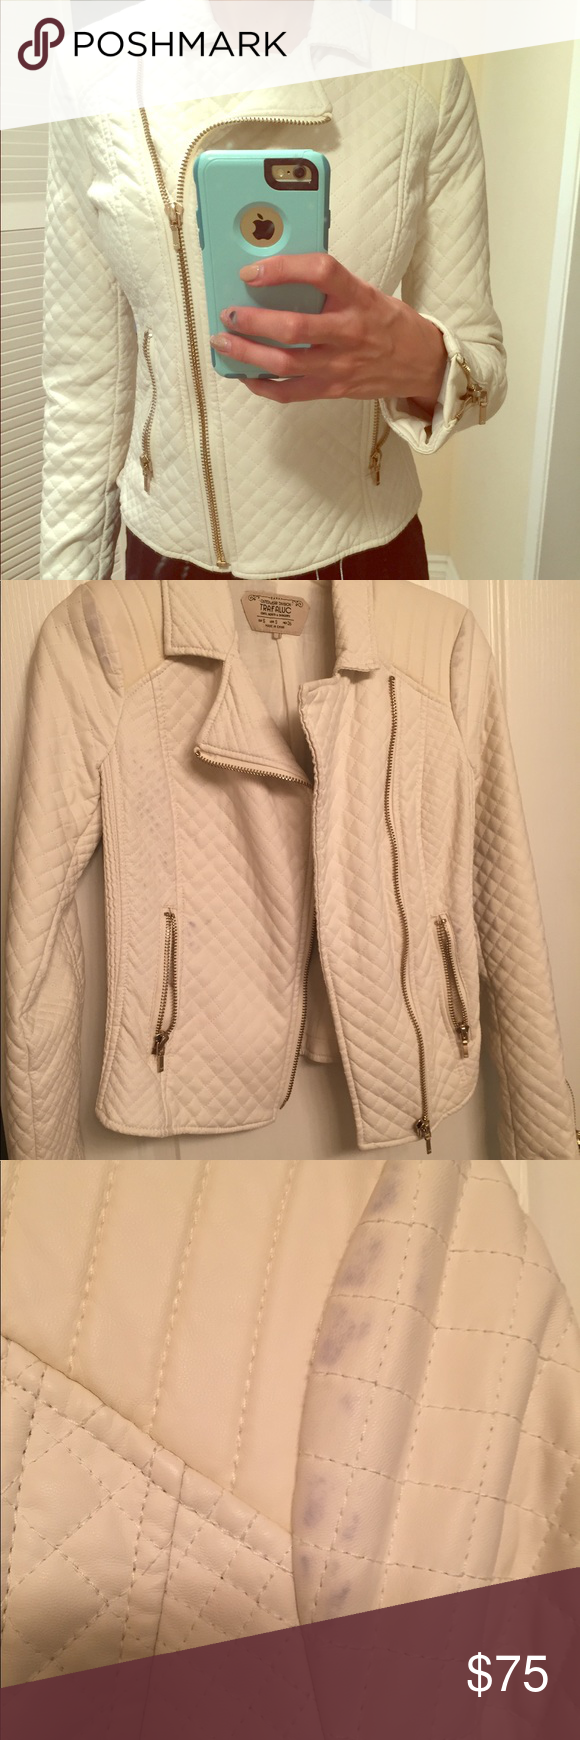 White Zara leather jacket White Zara leather jacket. Gold